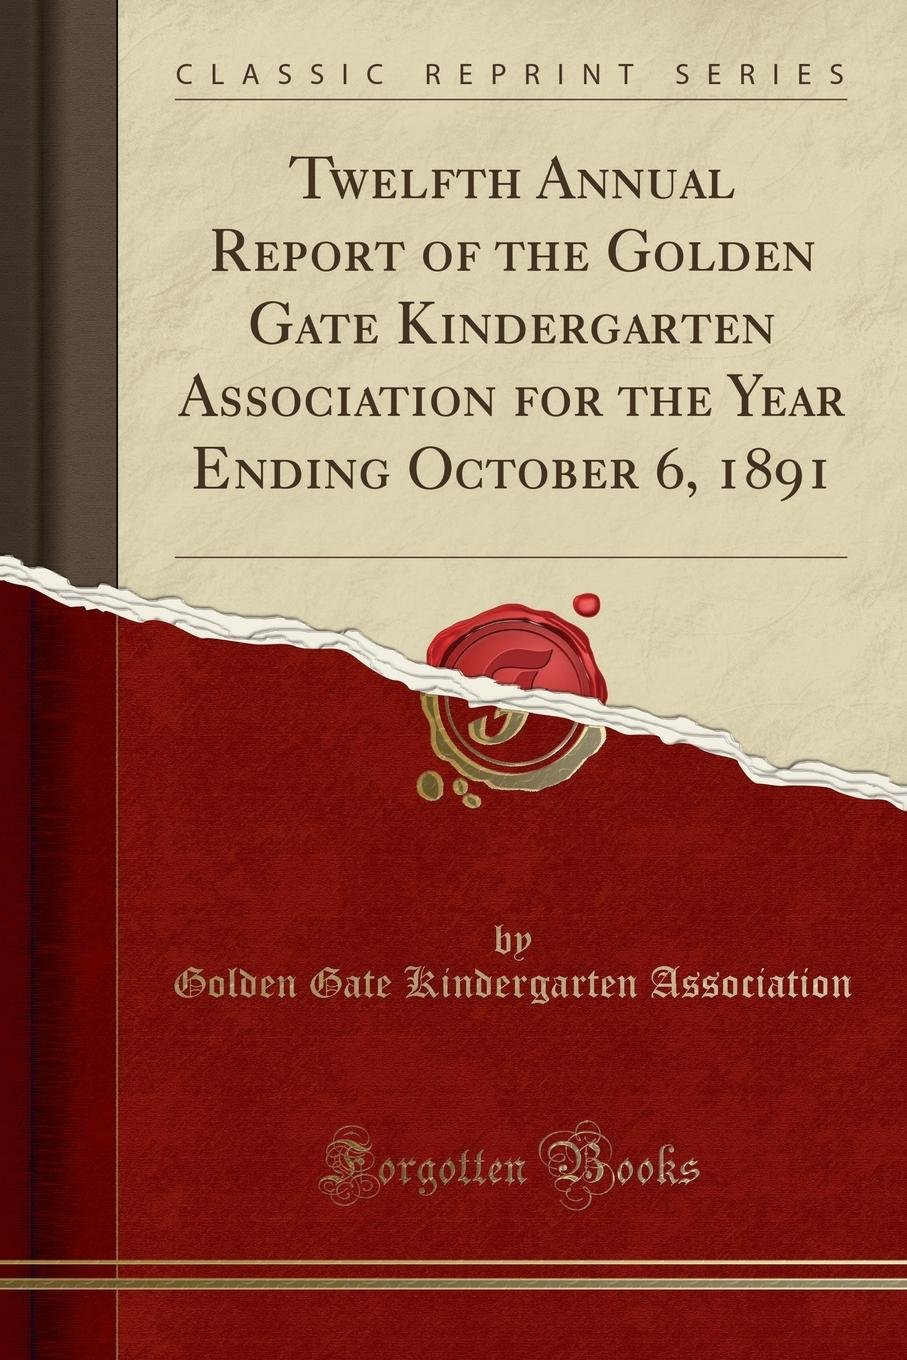 Twelfth Annual Report of the Golden Gate Kindergarten Association for the Year Ending October 6, 1891 (Classic Reprint) PDF